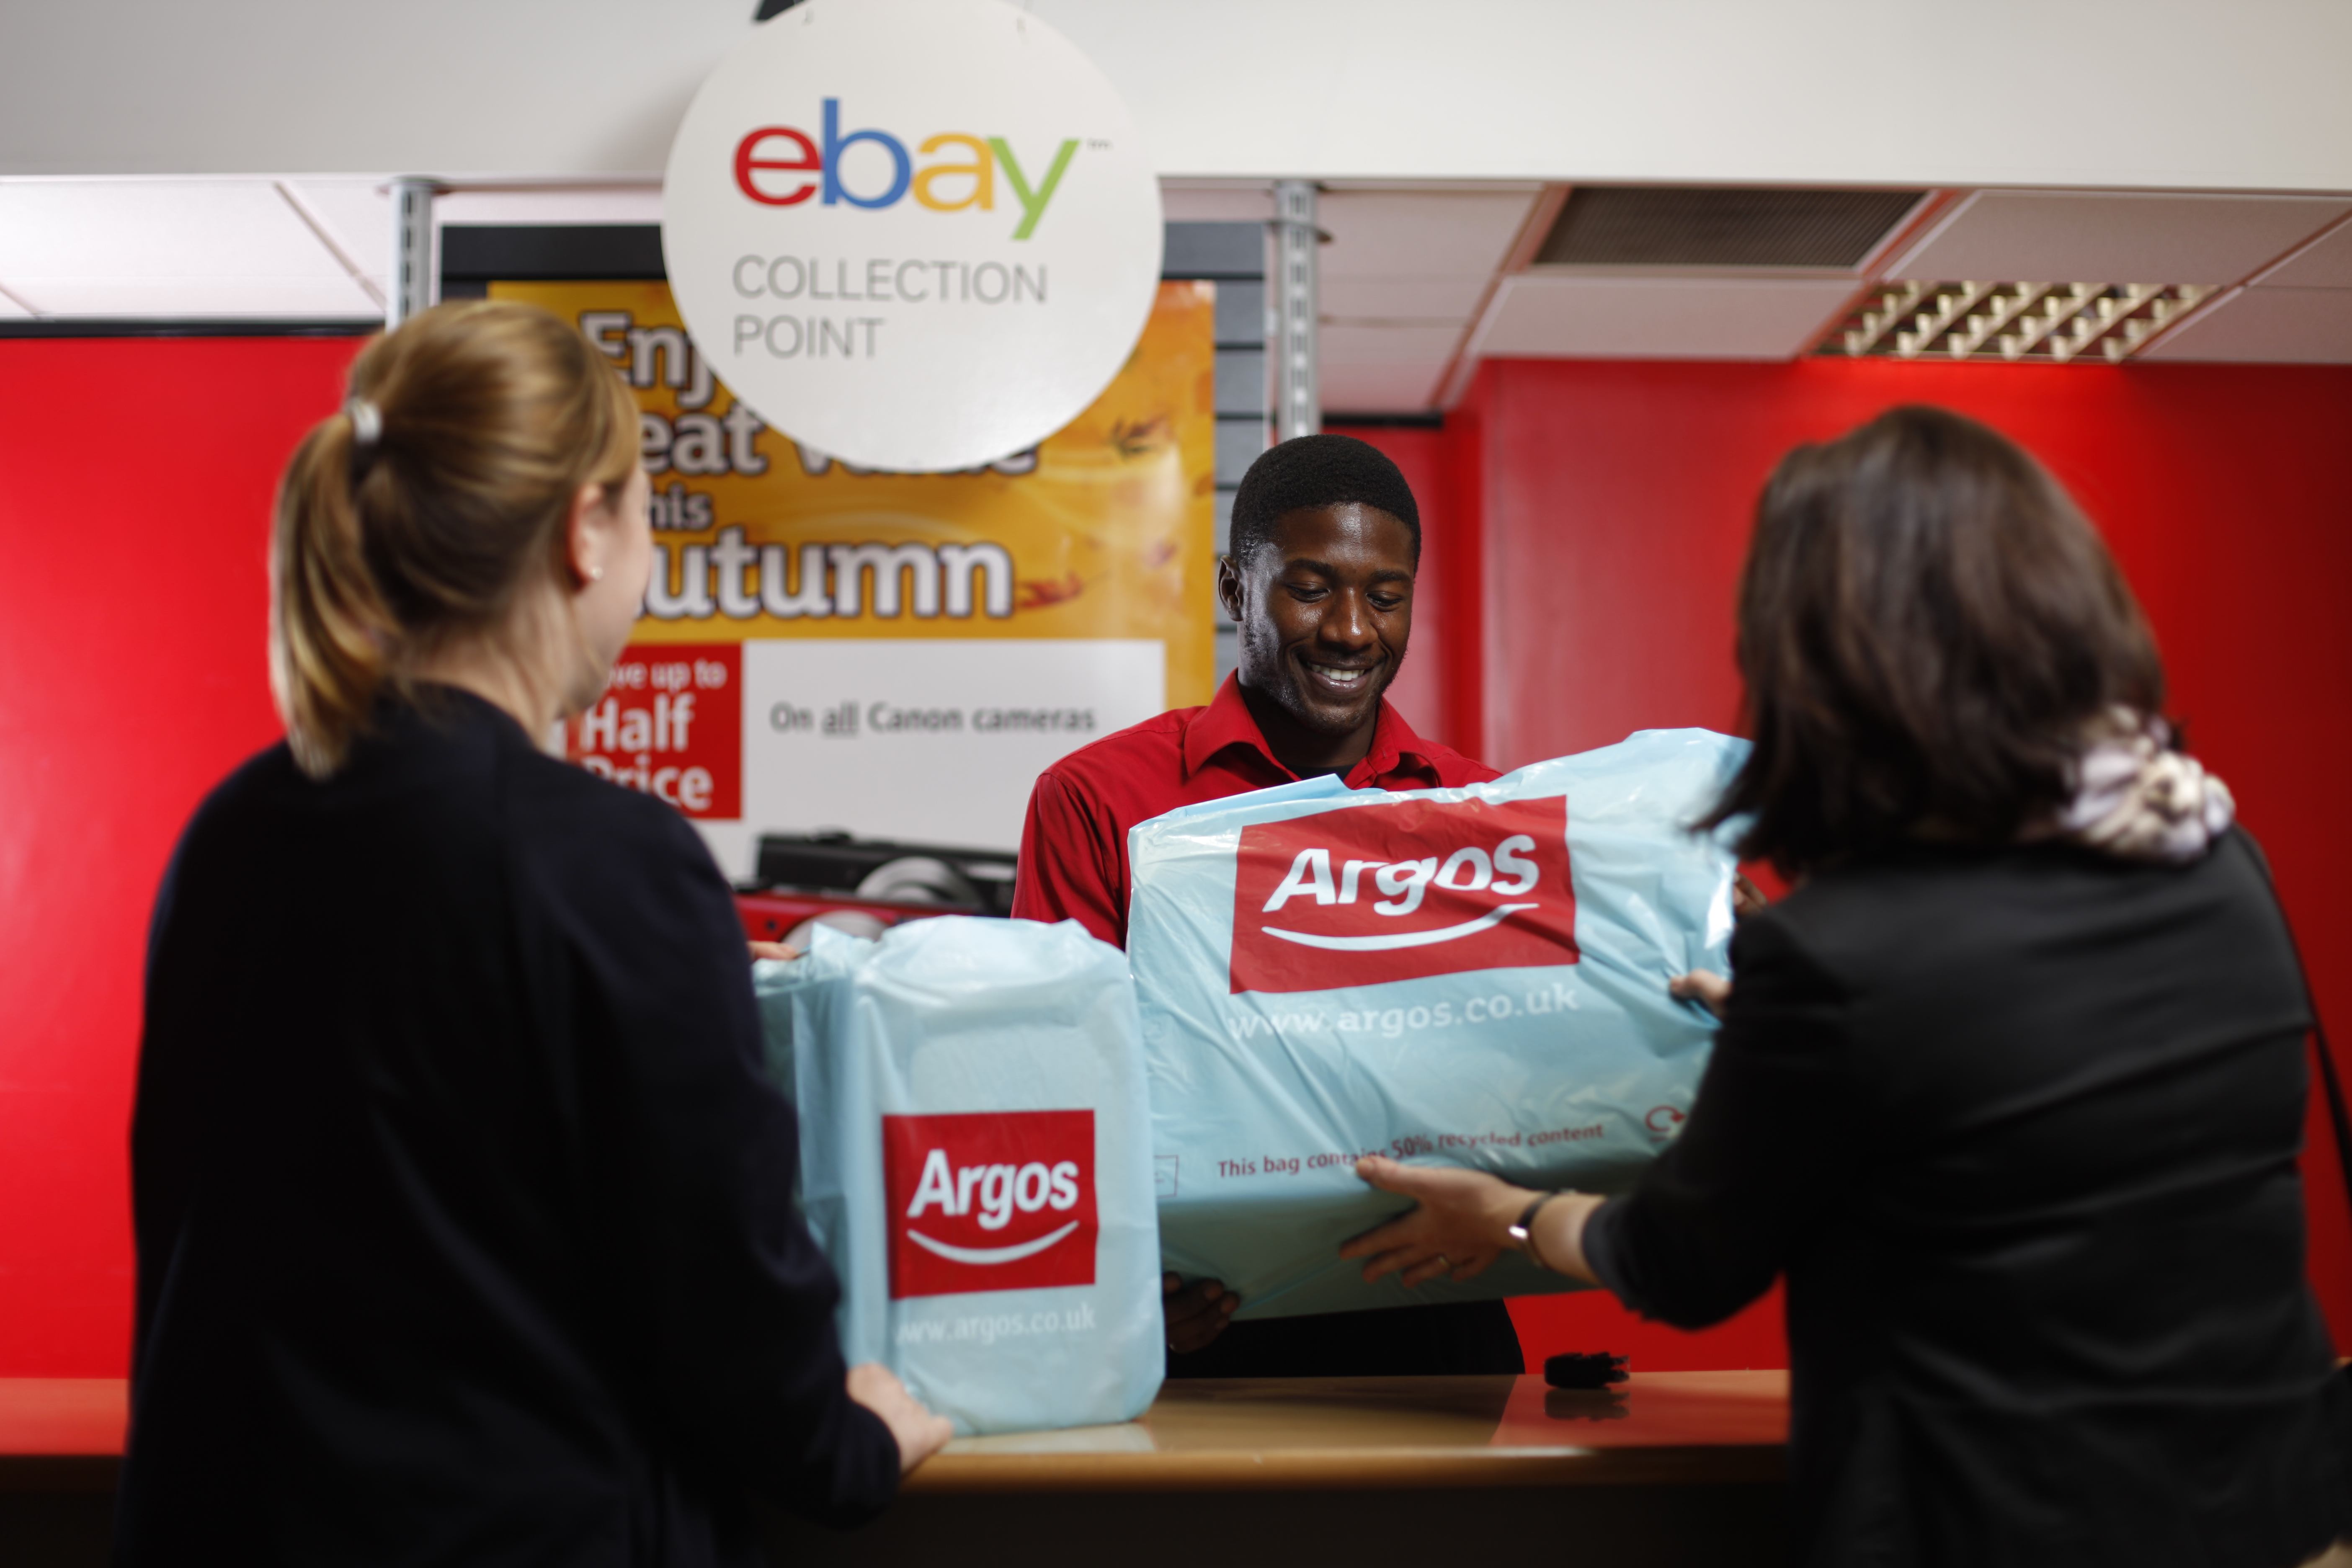 eBay eyeing possibilities offered by Sainsbury's/Argos tie-up